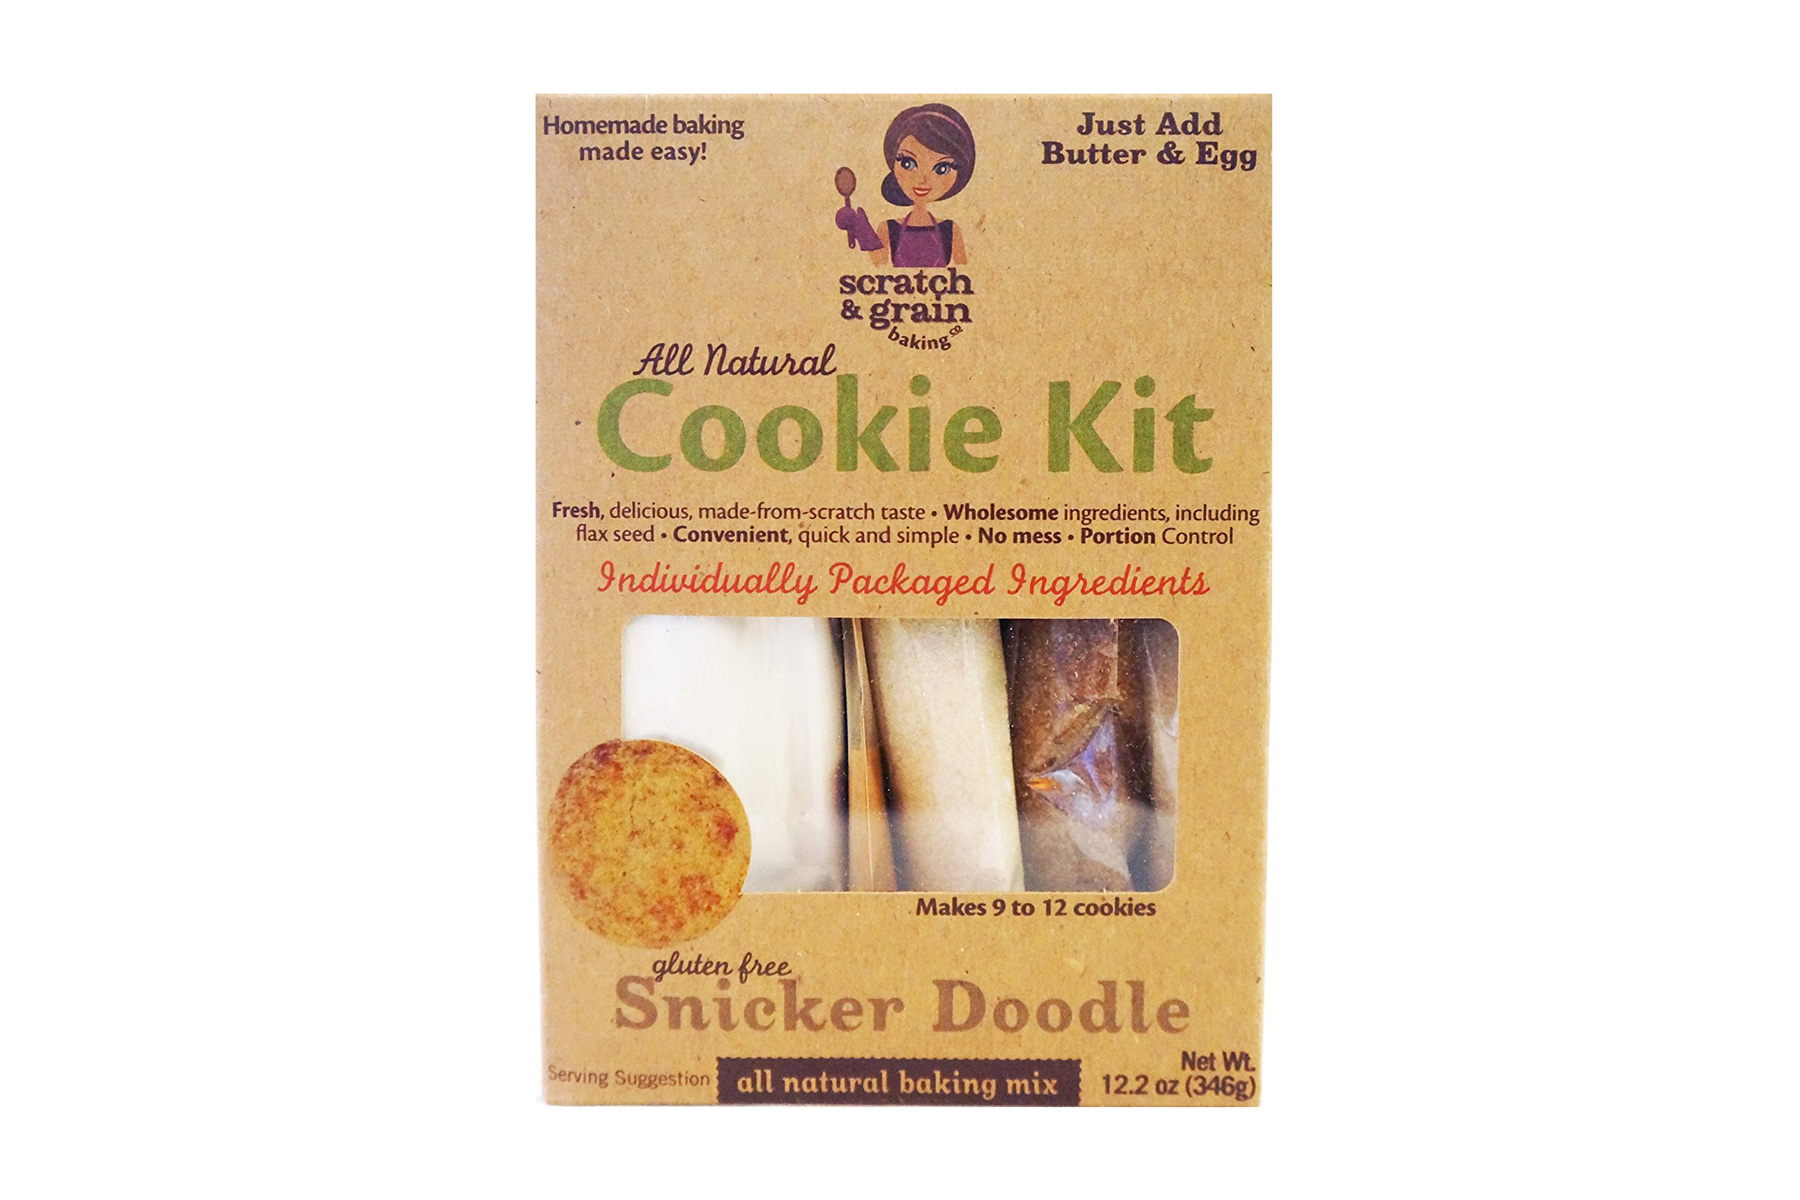 Scratch & Grain Baking Gluten-Free Snicker Doodle Cookie Kit